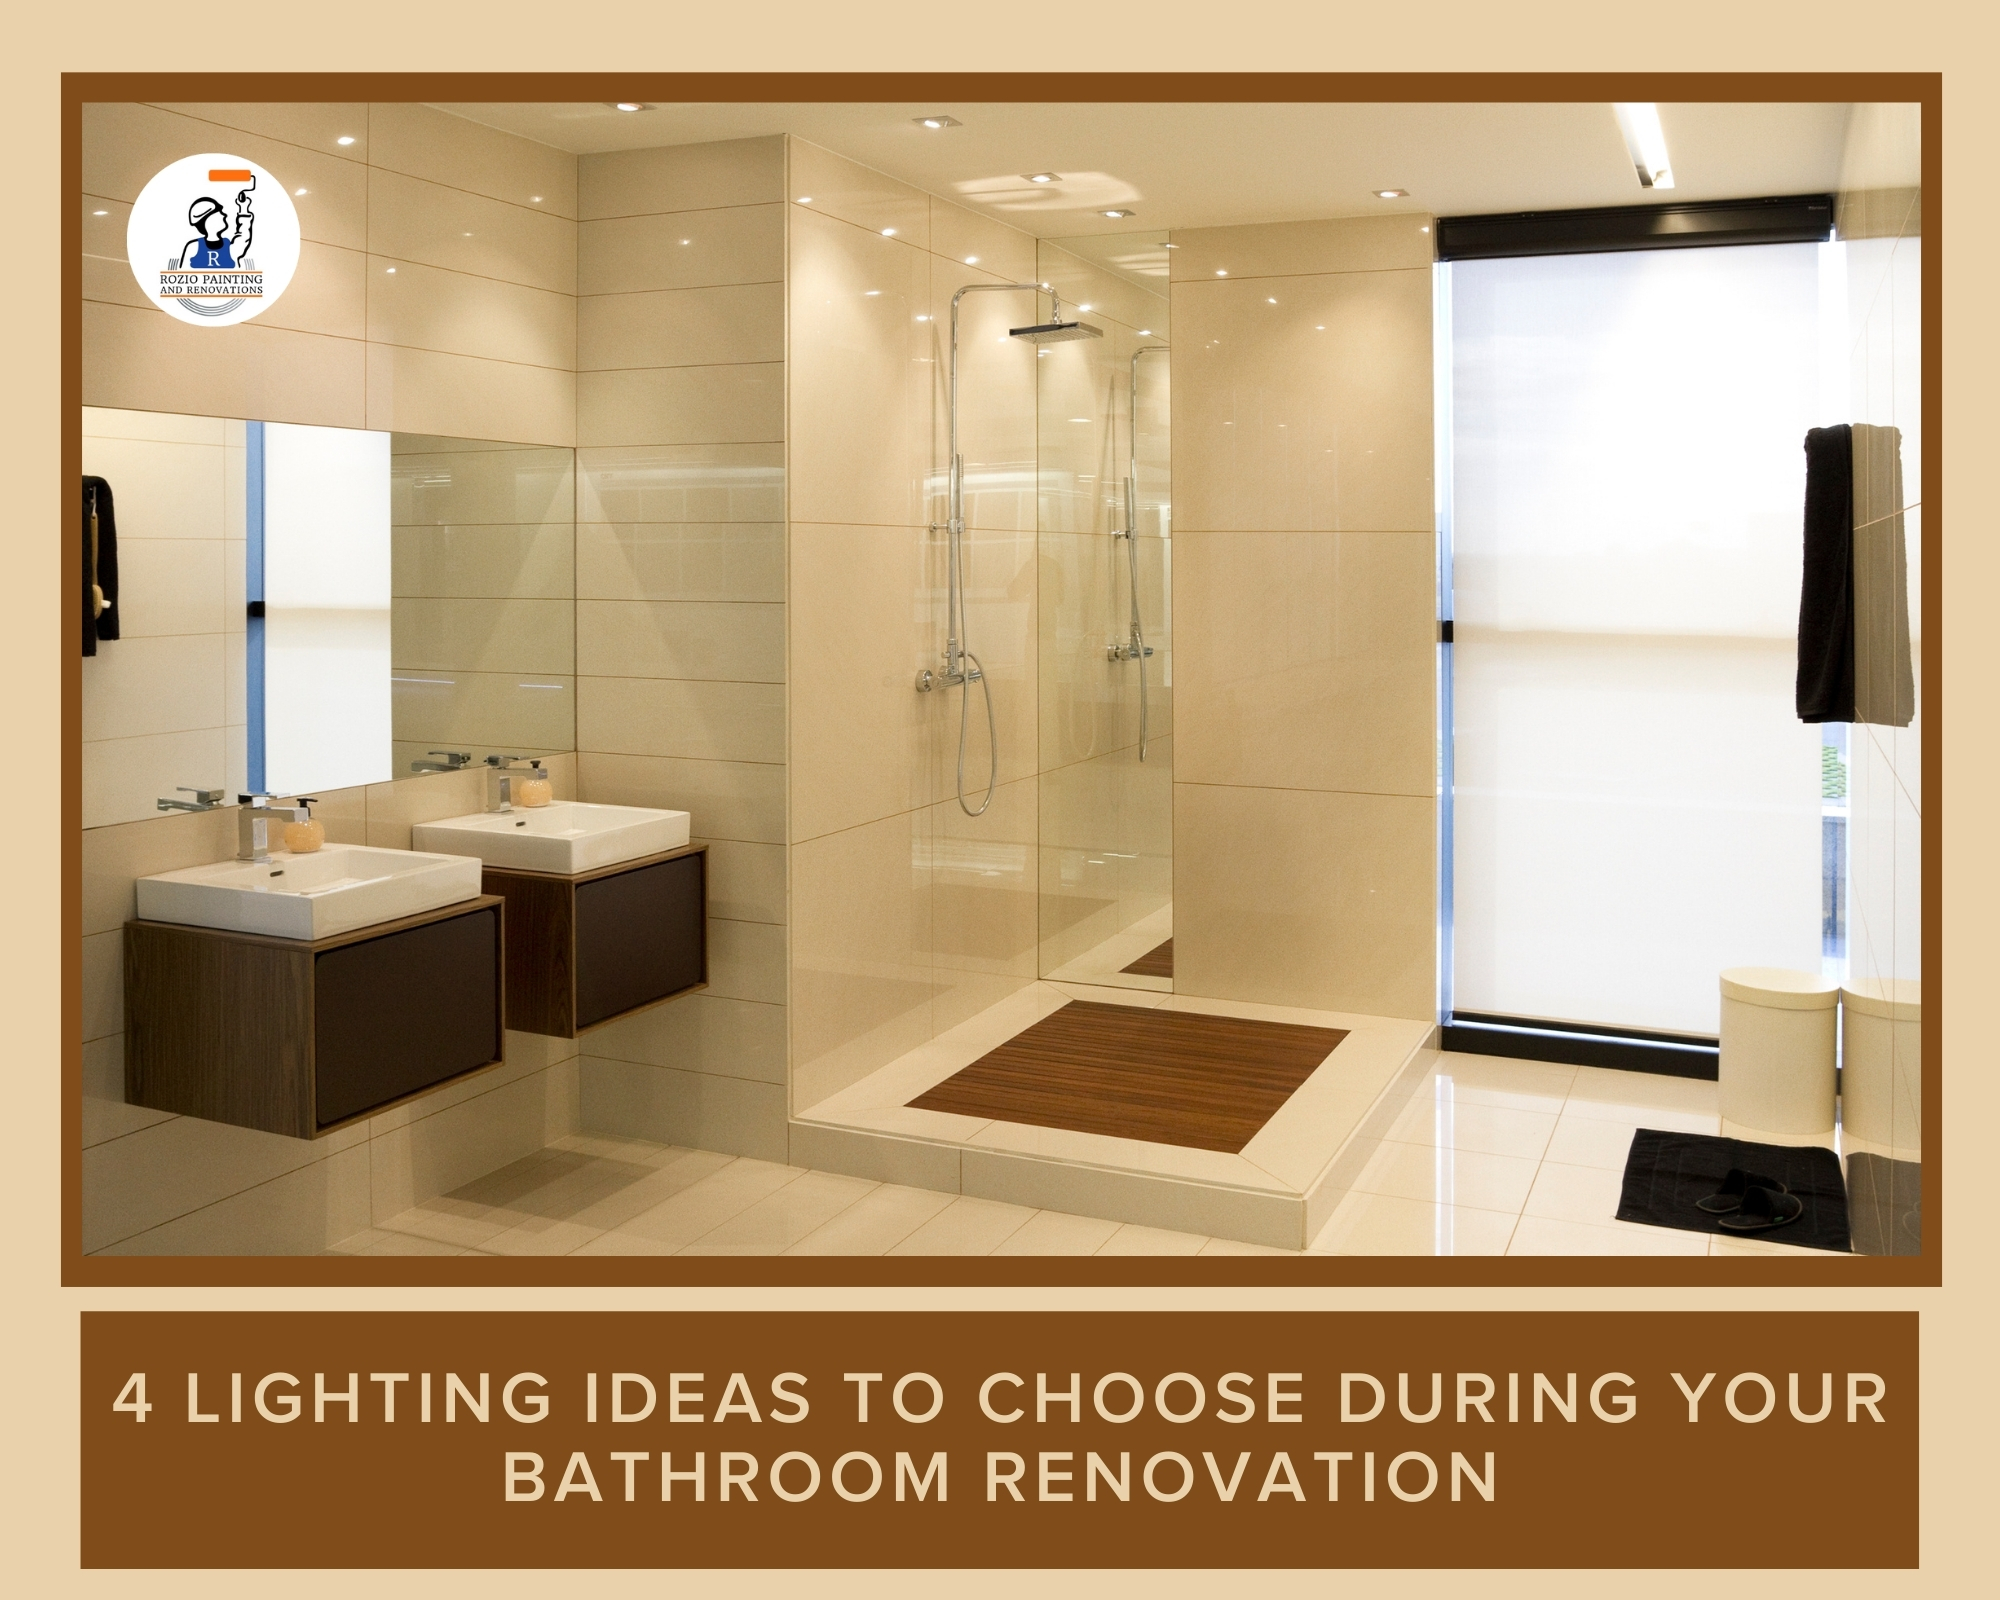 4 Lighting Ideas to Choose During Your Bathroom Renovation